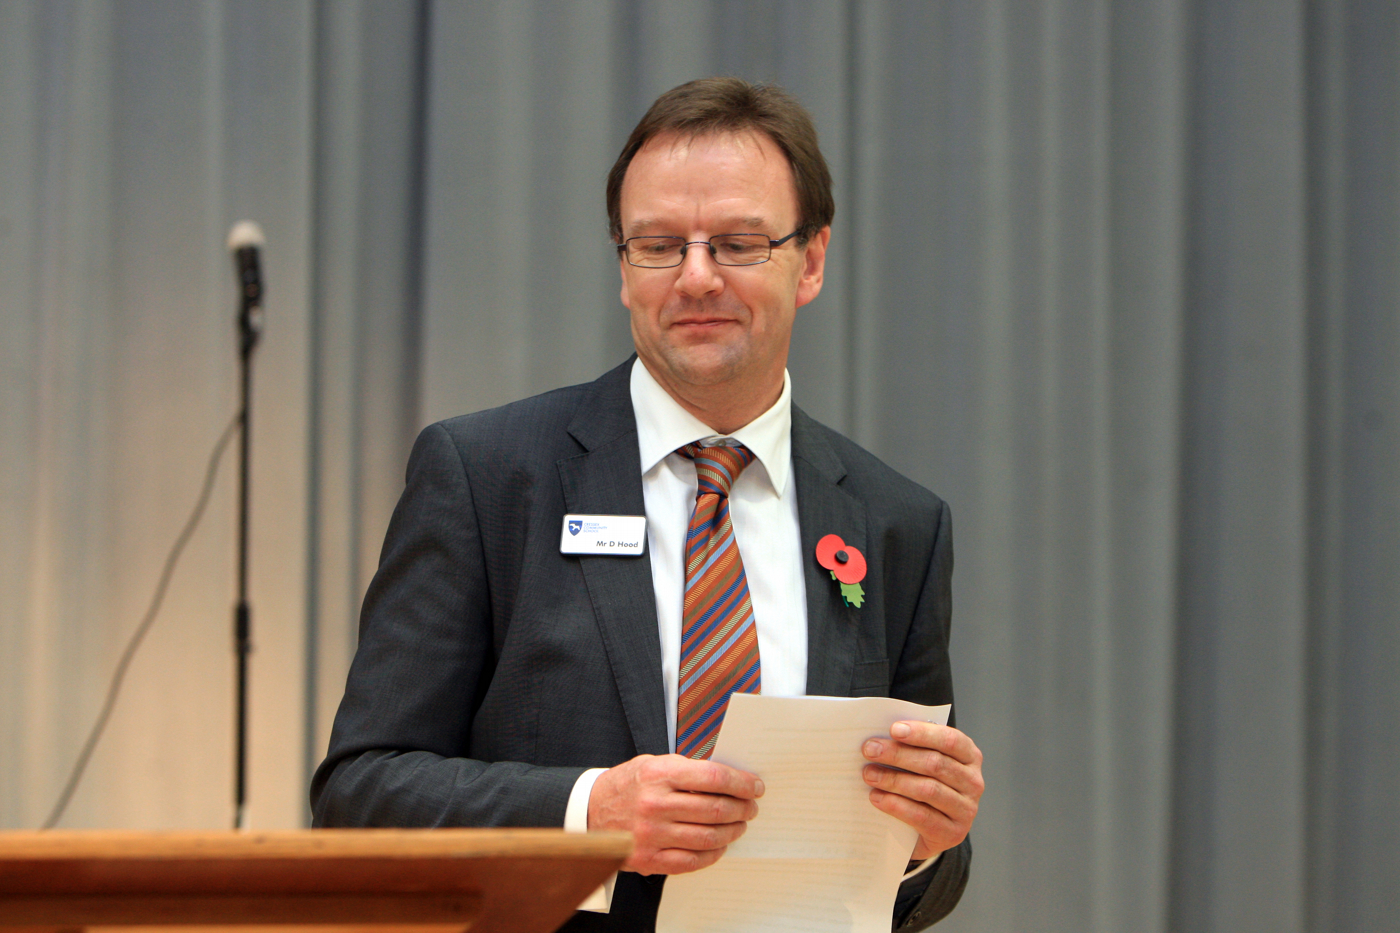 David Hood, Cressex Community School head teacher